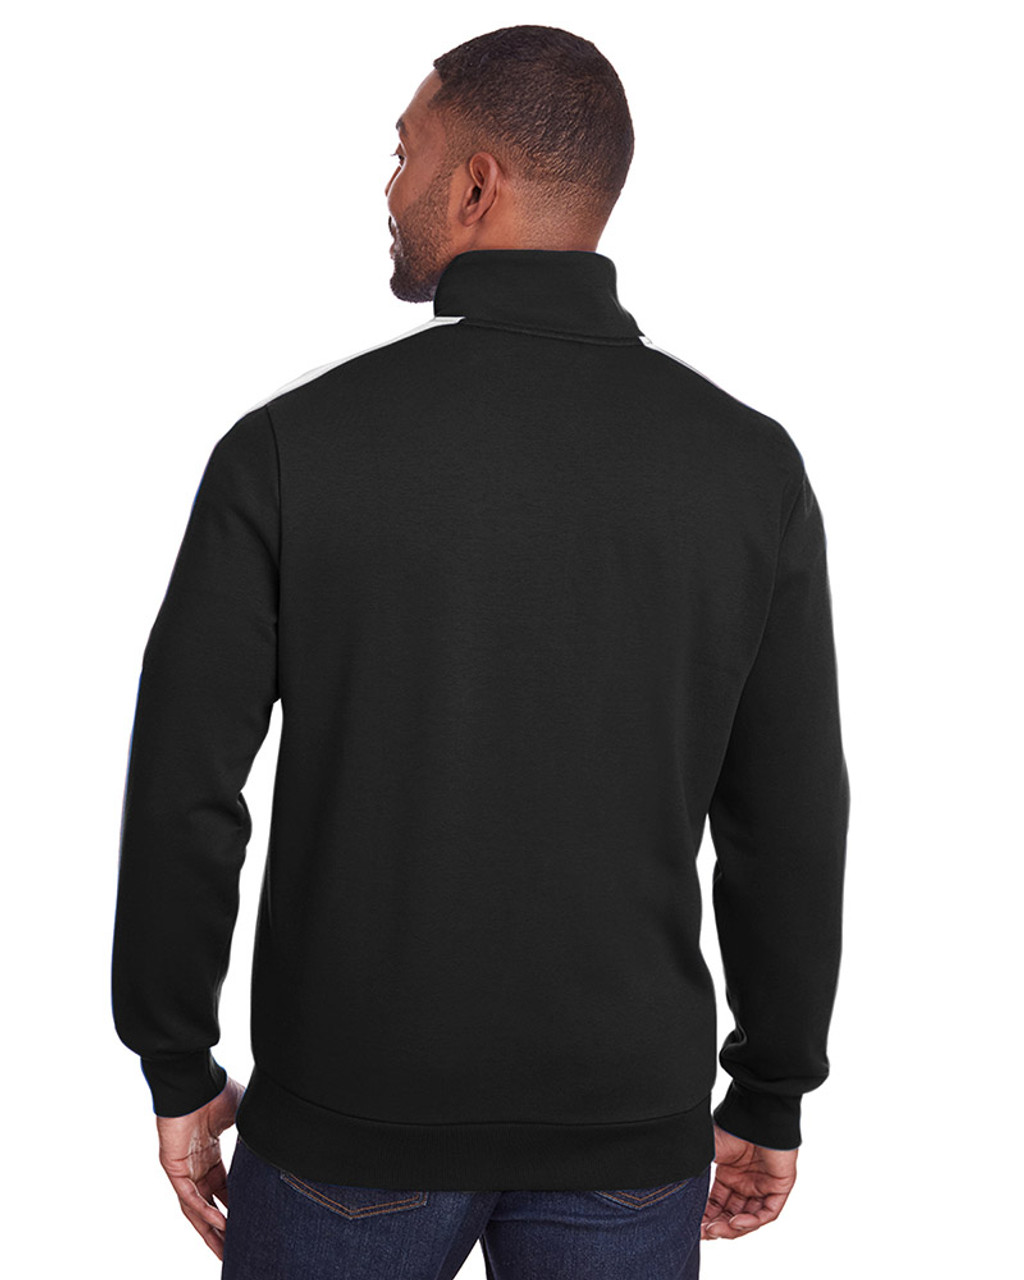 Puma Black/Puma White - back, 597021 Puma Sport Adult P48 Fleece Track Jacket | Blankclothing.ca